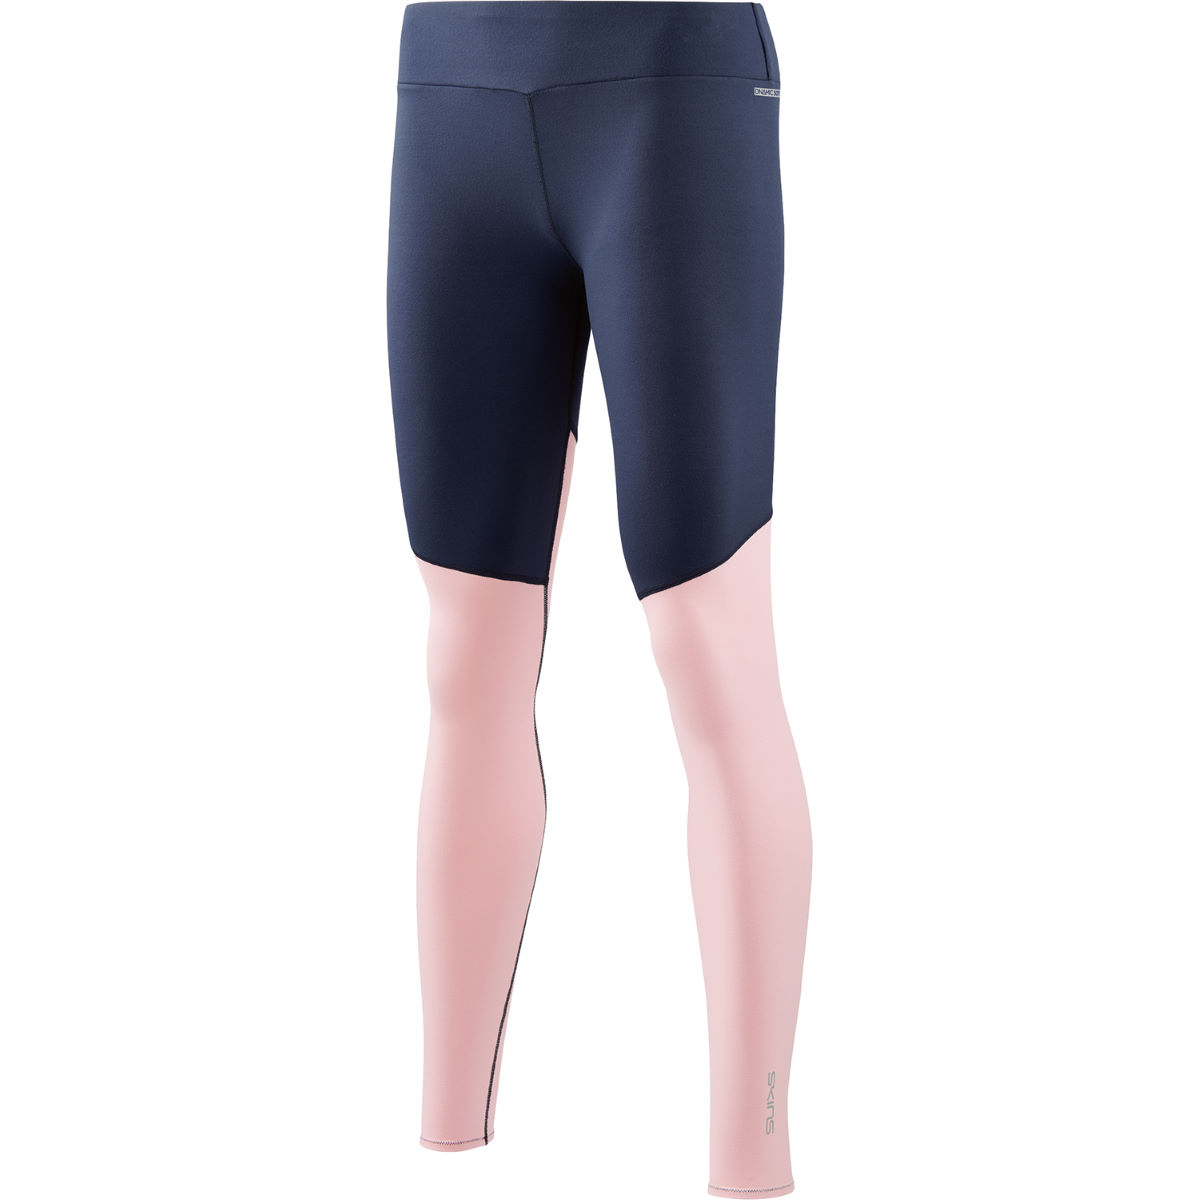 Skins SKINS Women's DNAmic Soft Long Tights   Compression Tights